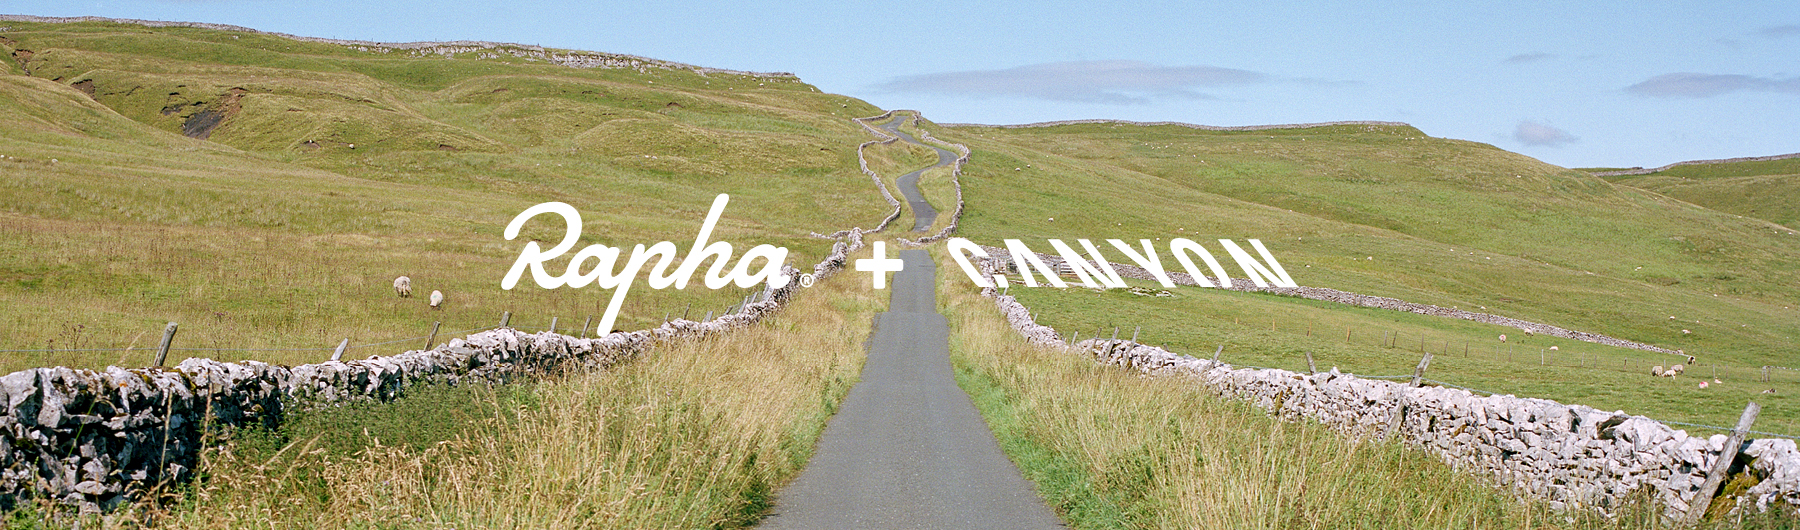 Rapha Cycling Club | Ride to Watch the Men's Road Race